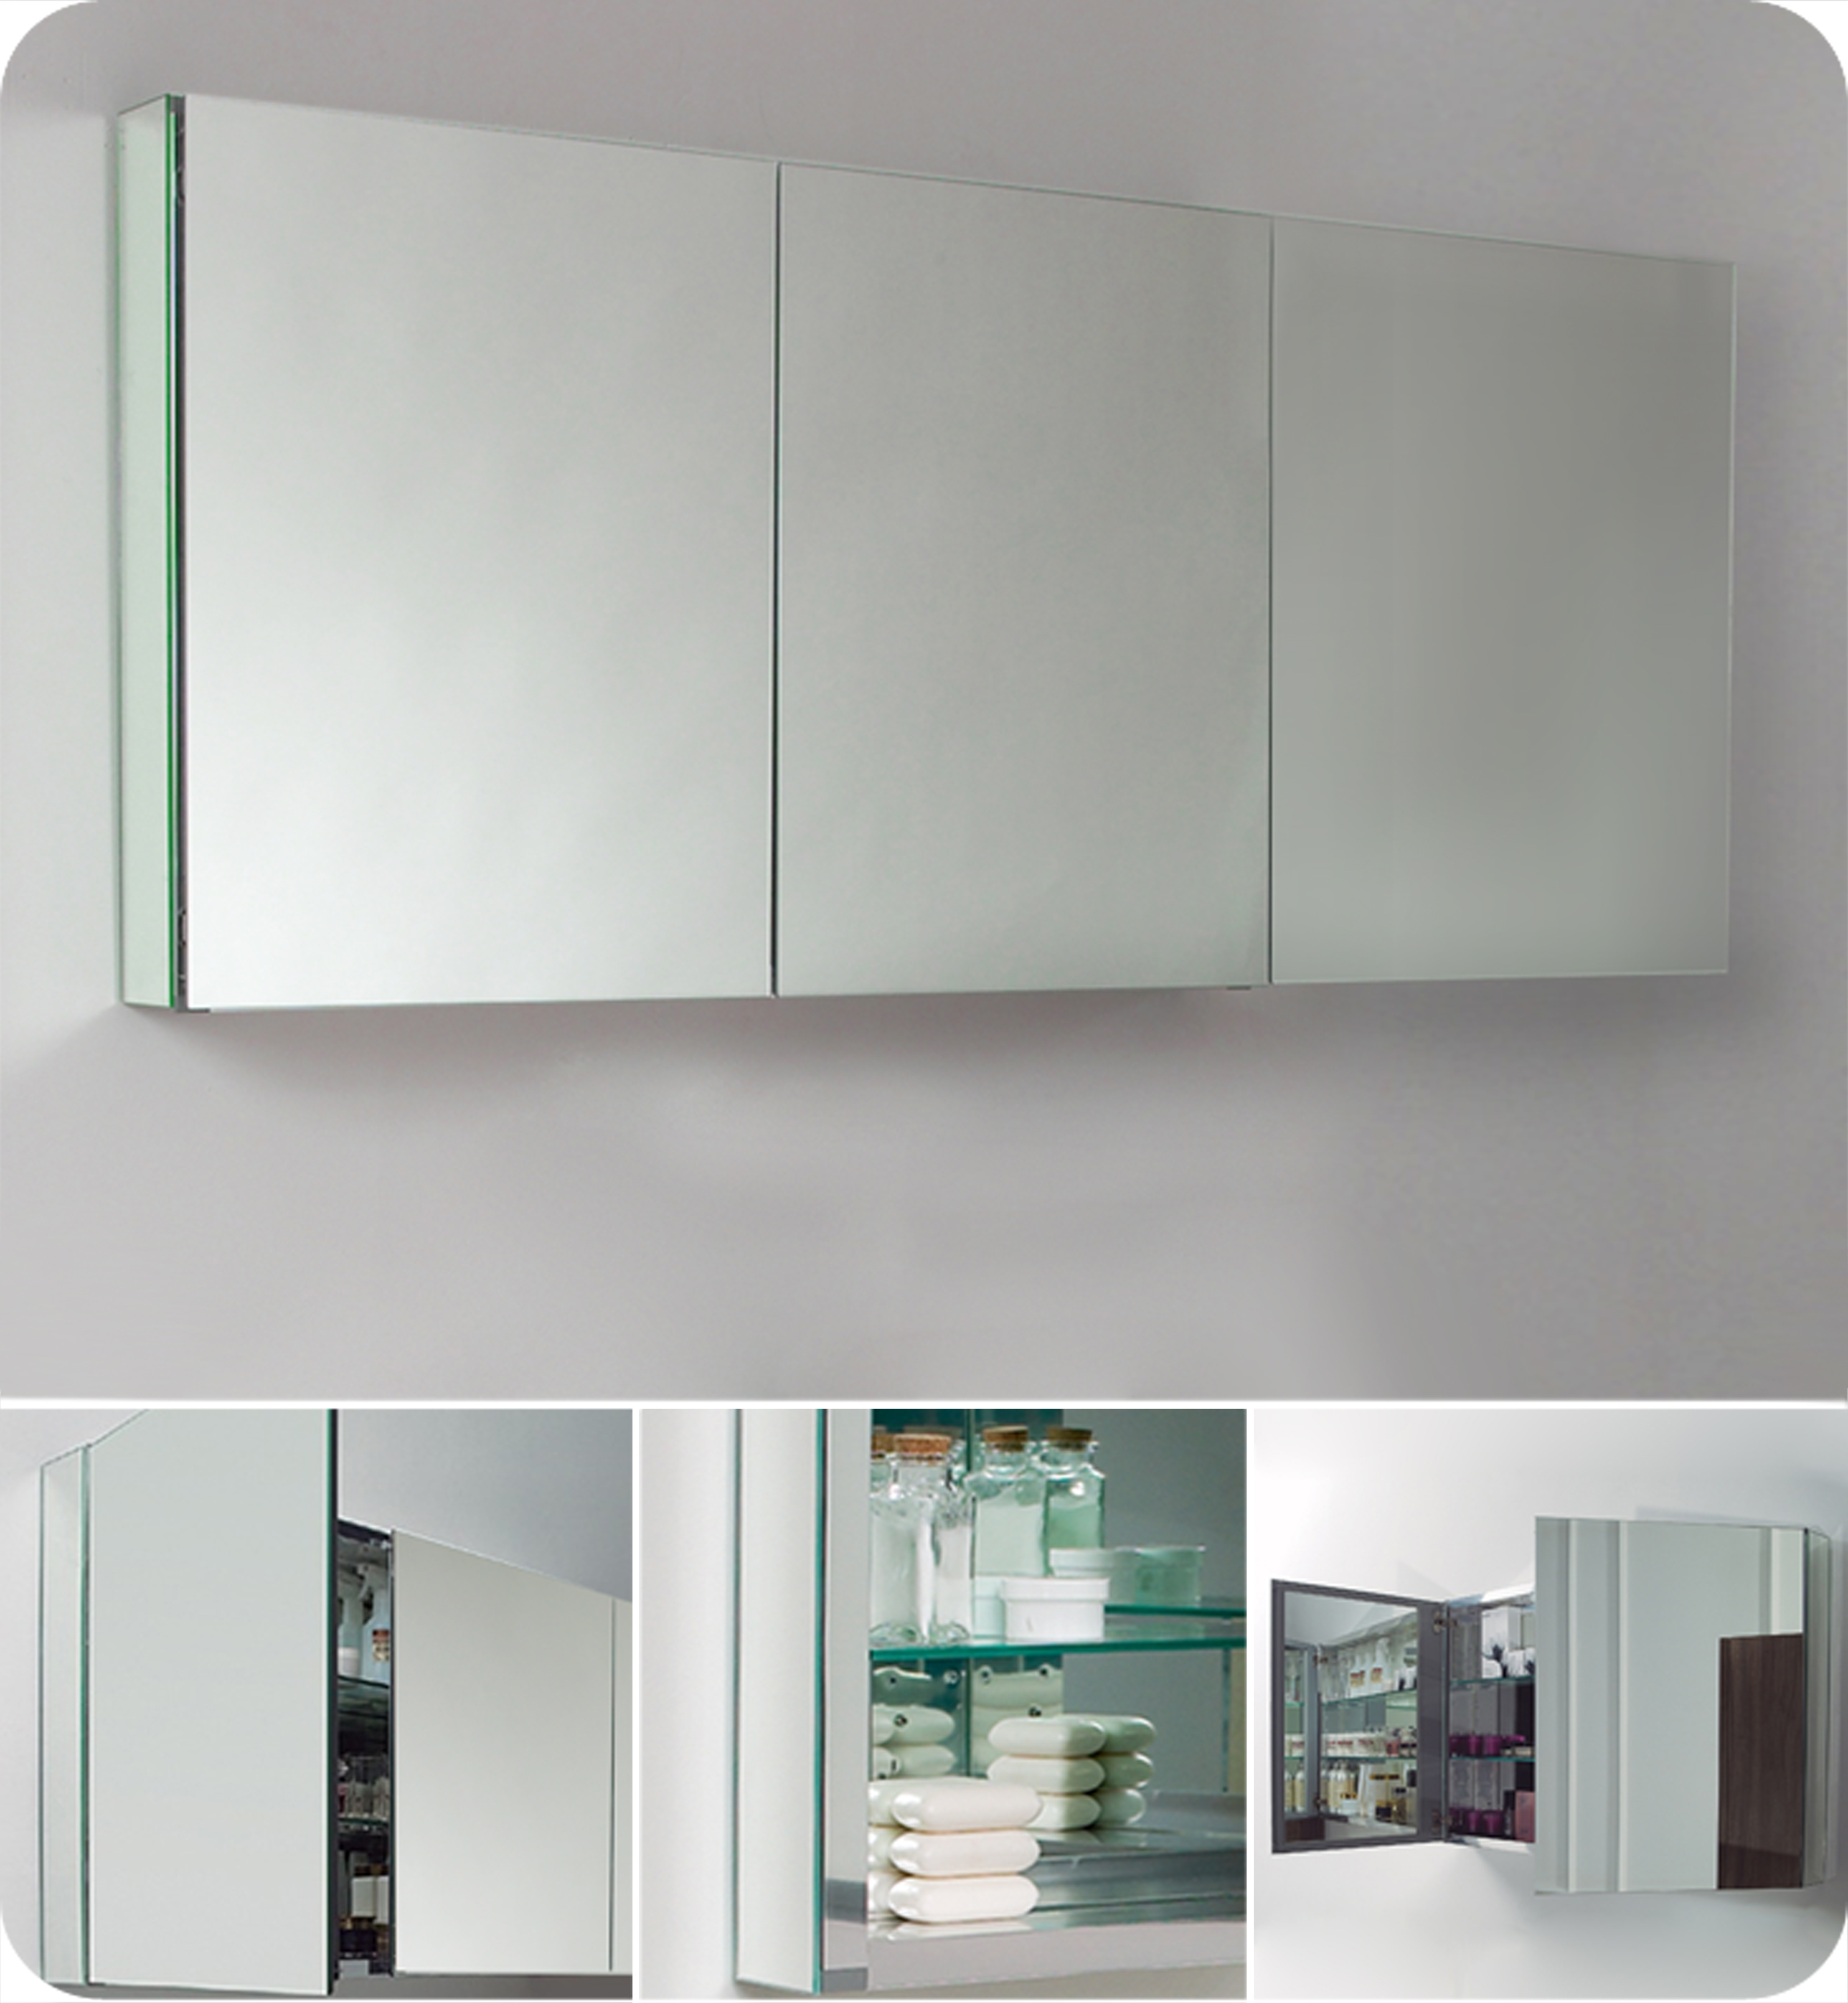 3 Door Bathroom Mirror Cabinets